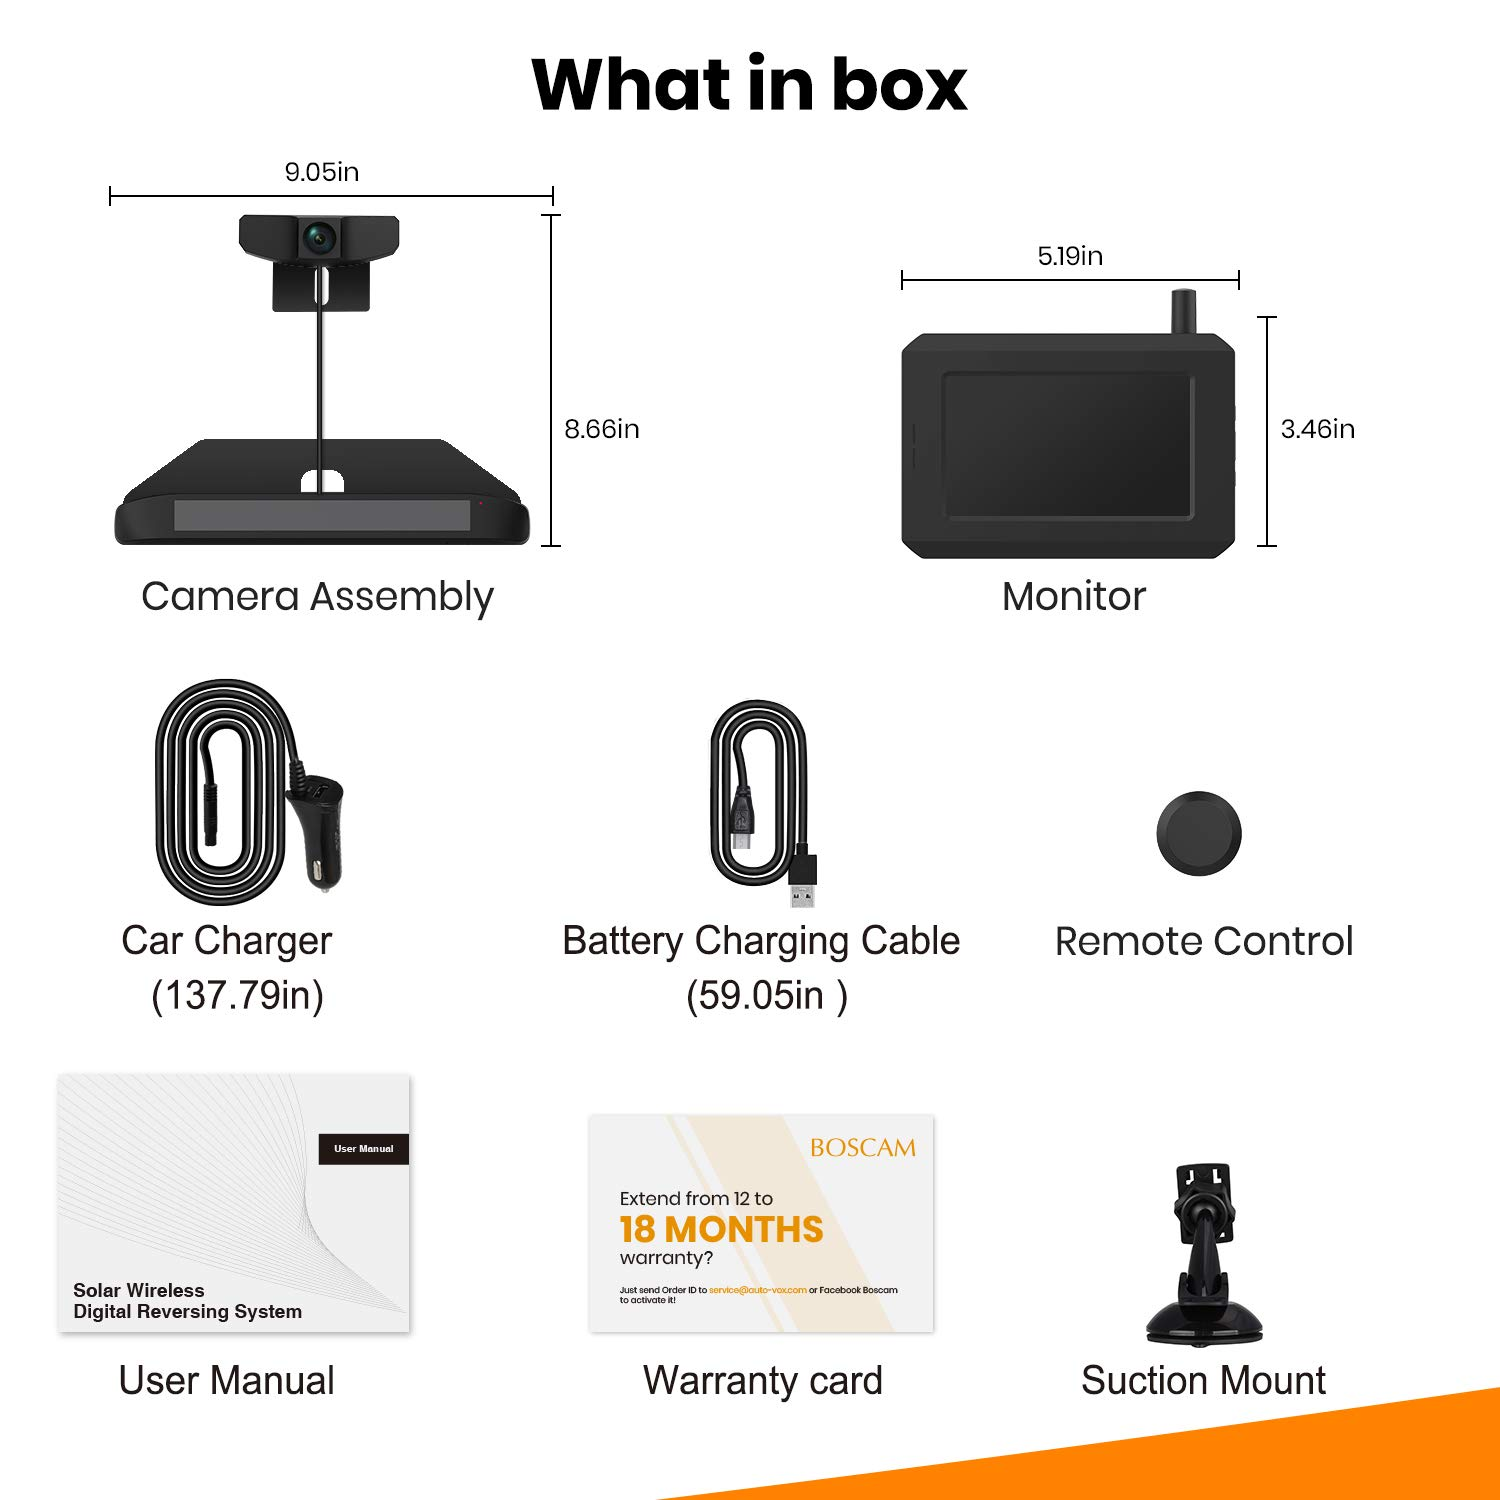 Rear View Camera BOSCAM SunGo Back up Camera with Universal Bracket No Wiring Minutes Installation Solar Wireless Backup Camera with Stable Digital Signal